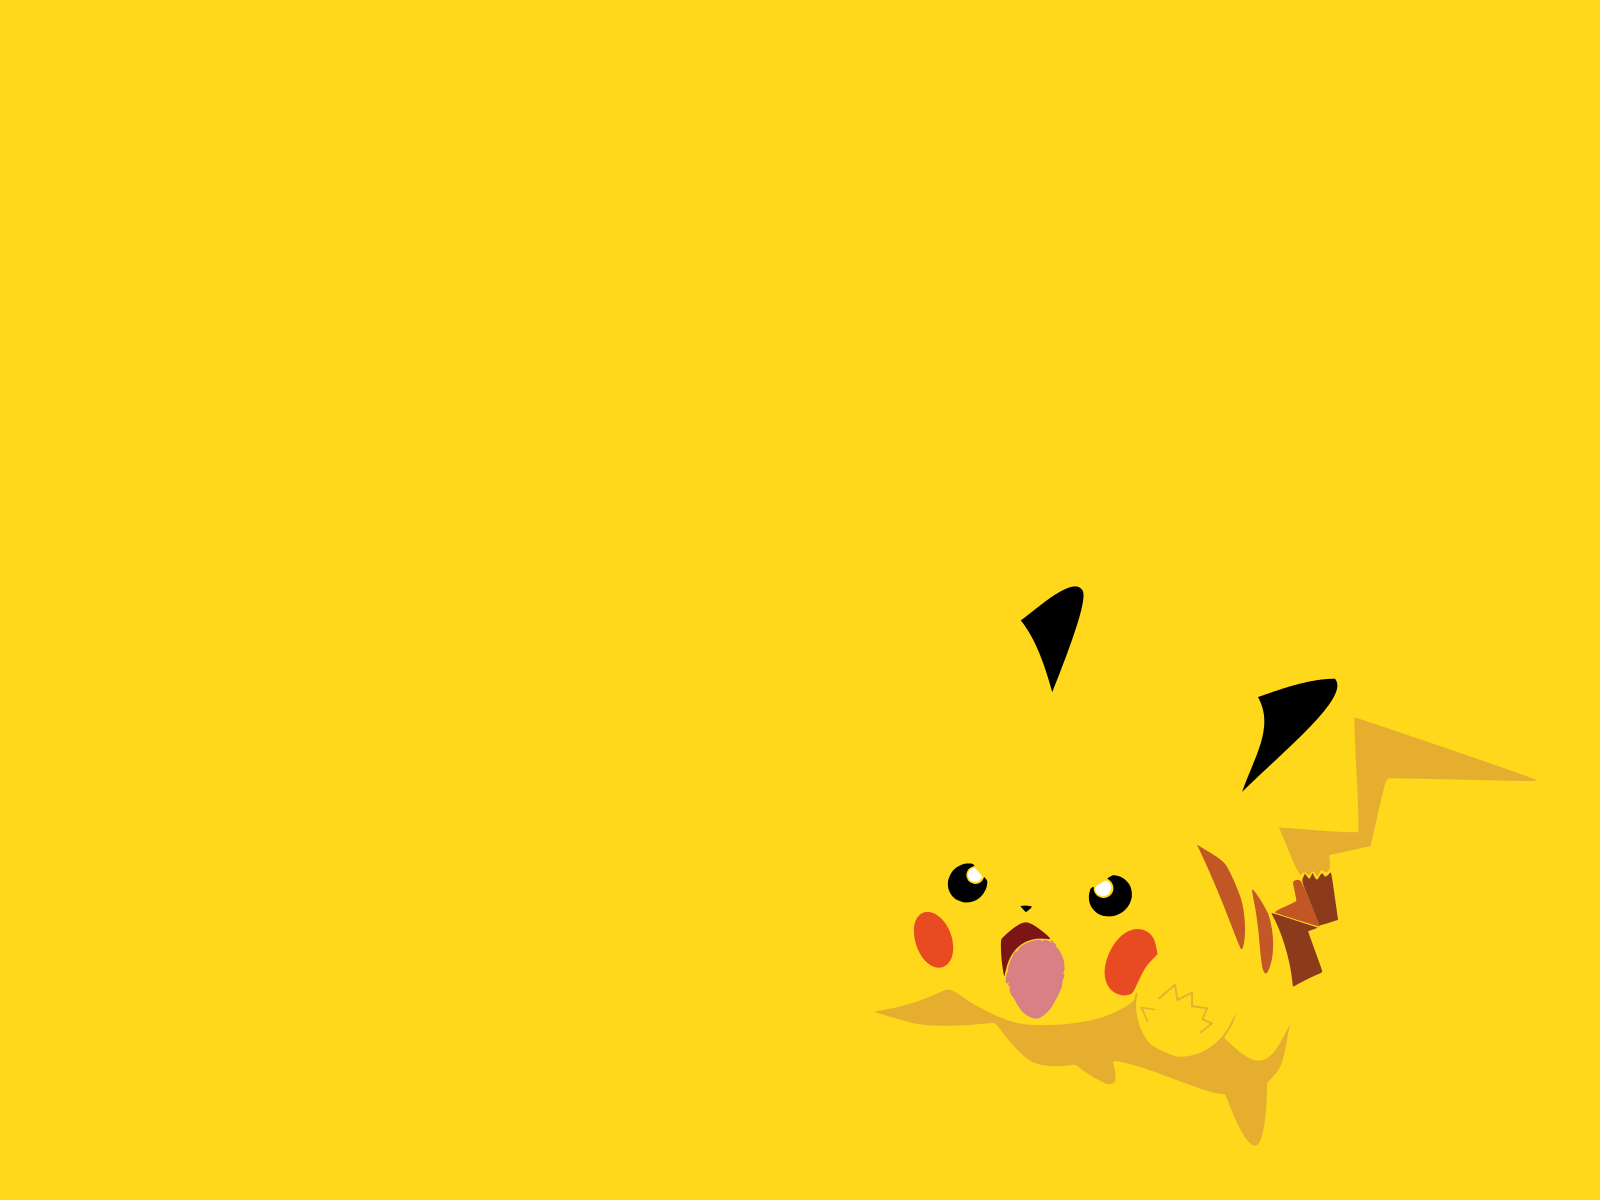 pikachu background by larsupars on deviantart